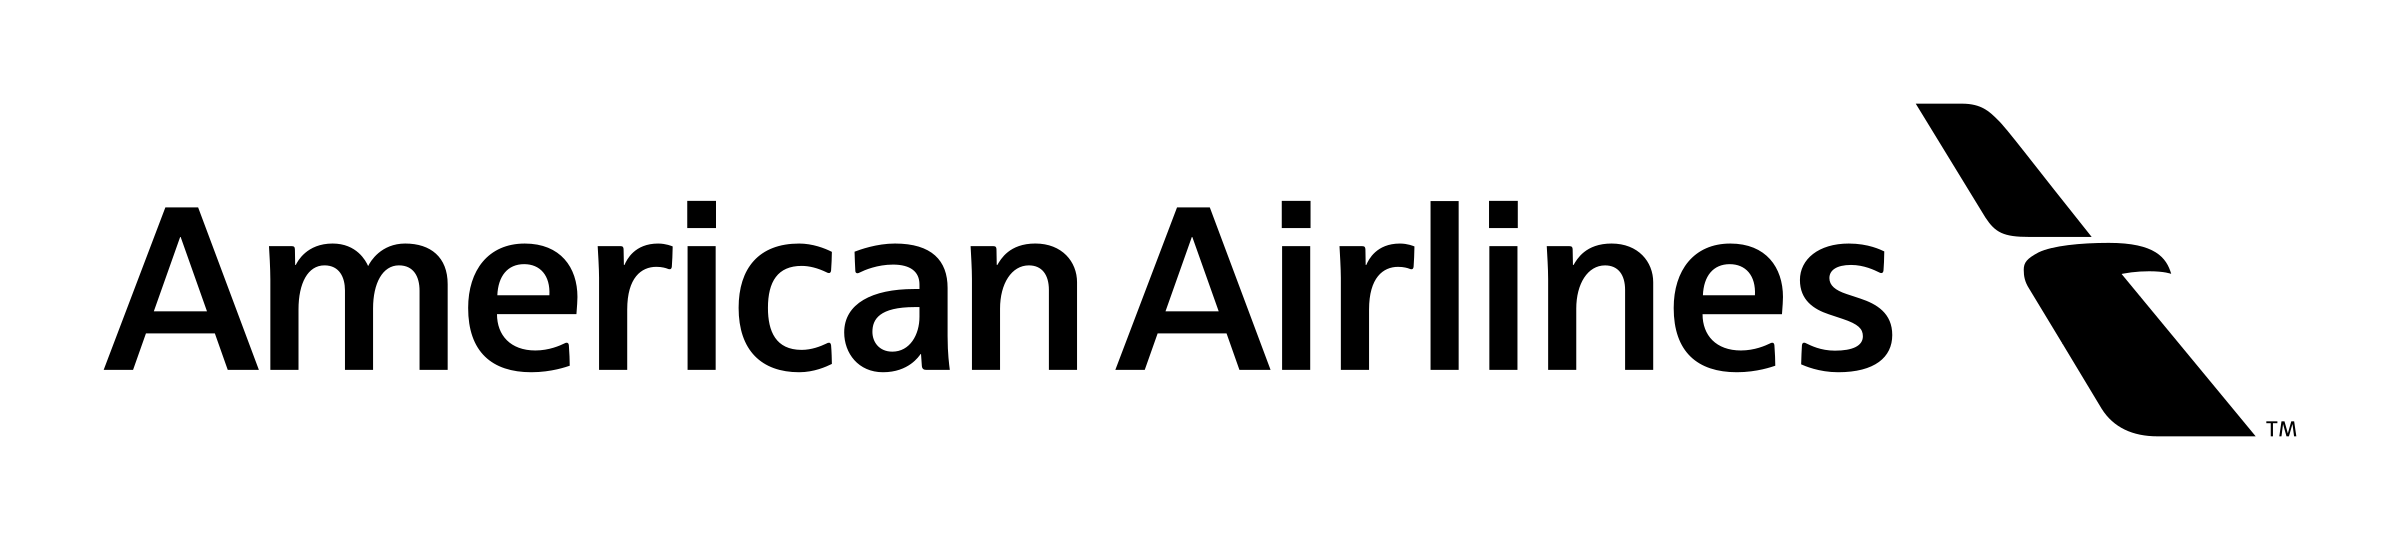 american-airlines-logo-black-and-white.png